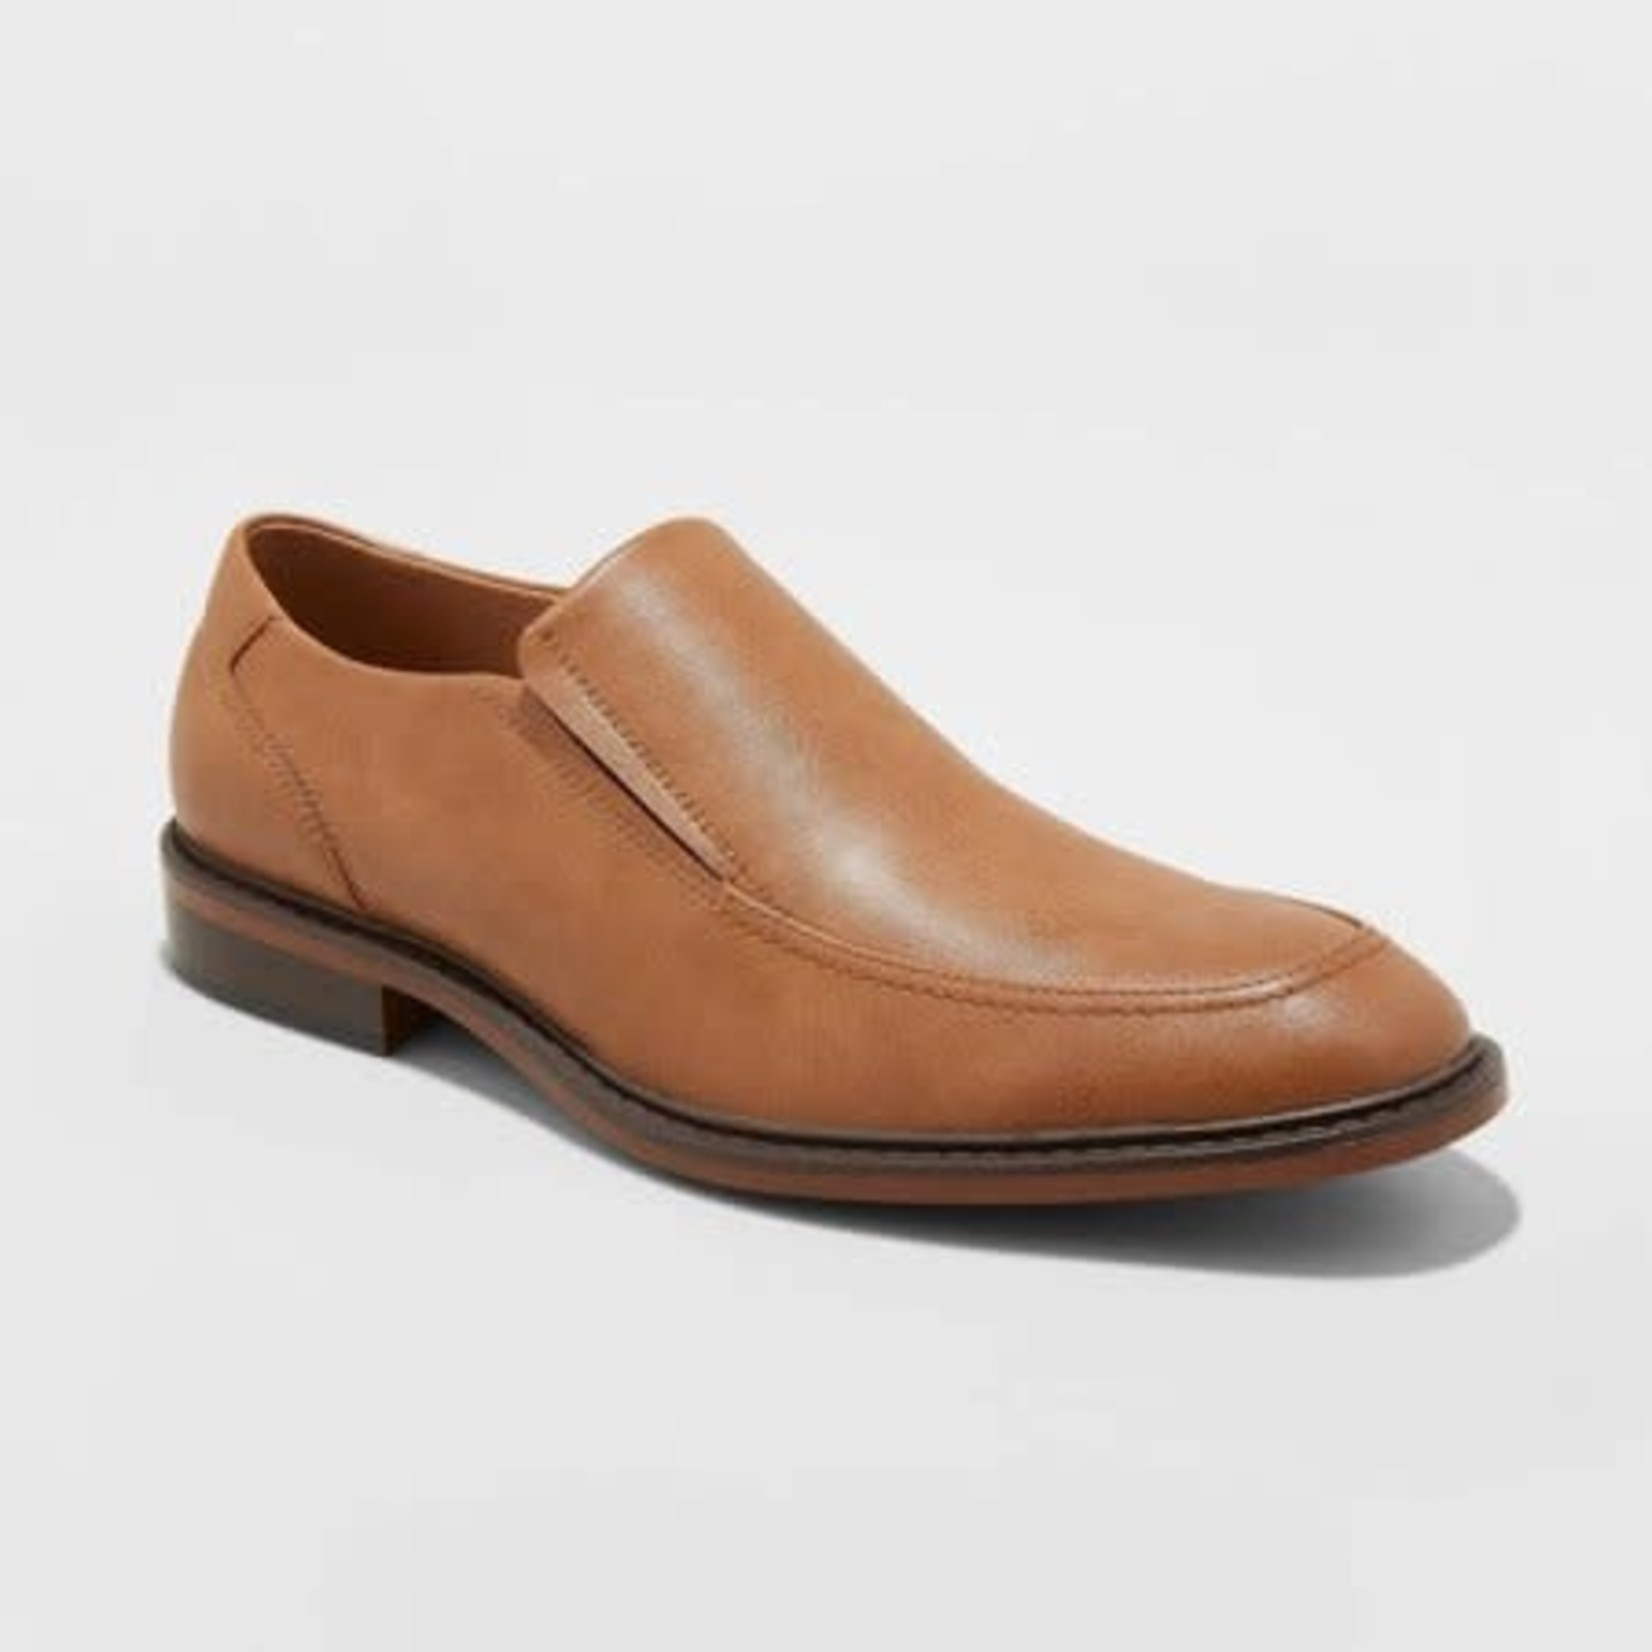 Goodfellow & Co   Men's Lincoln Loafer Dress Shoes-11.5